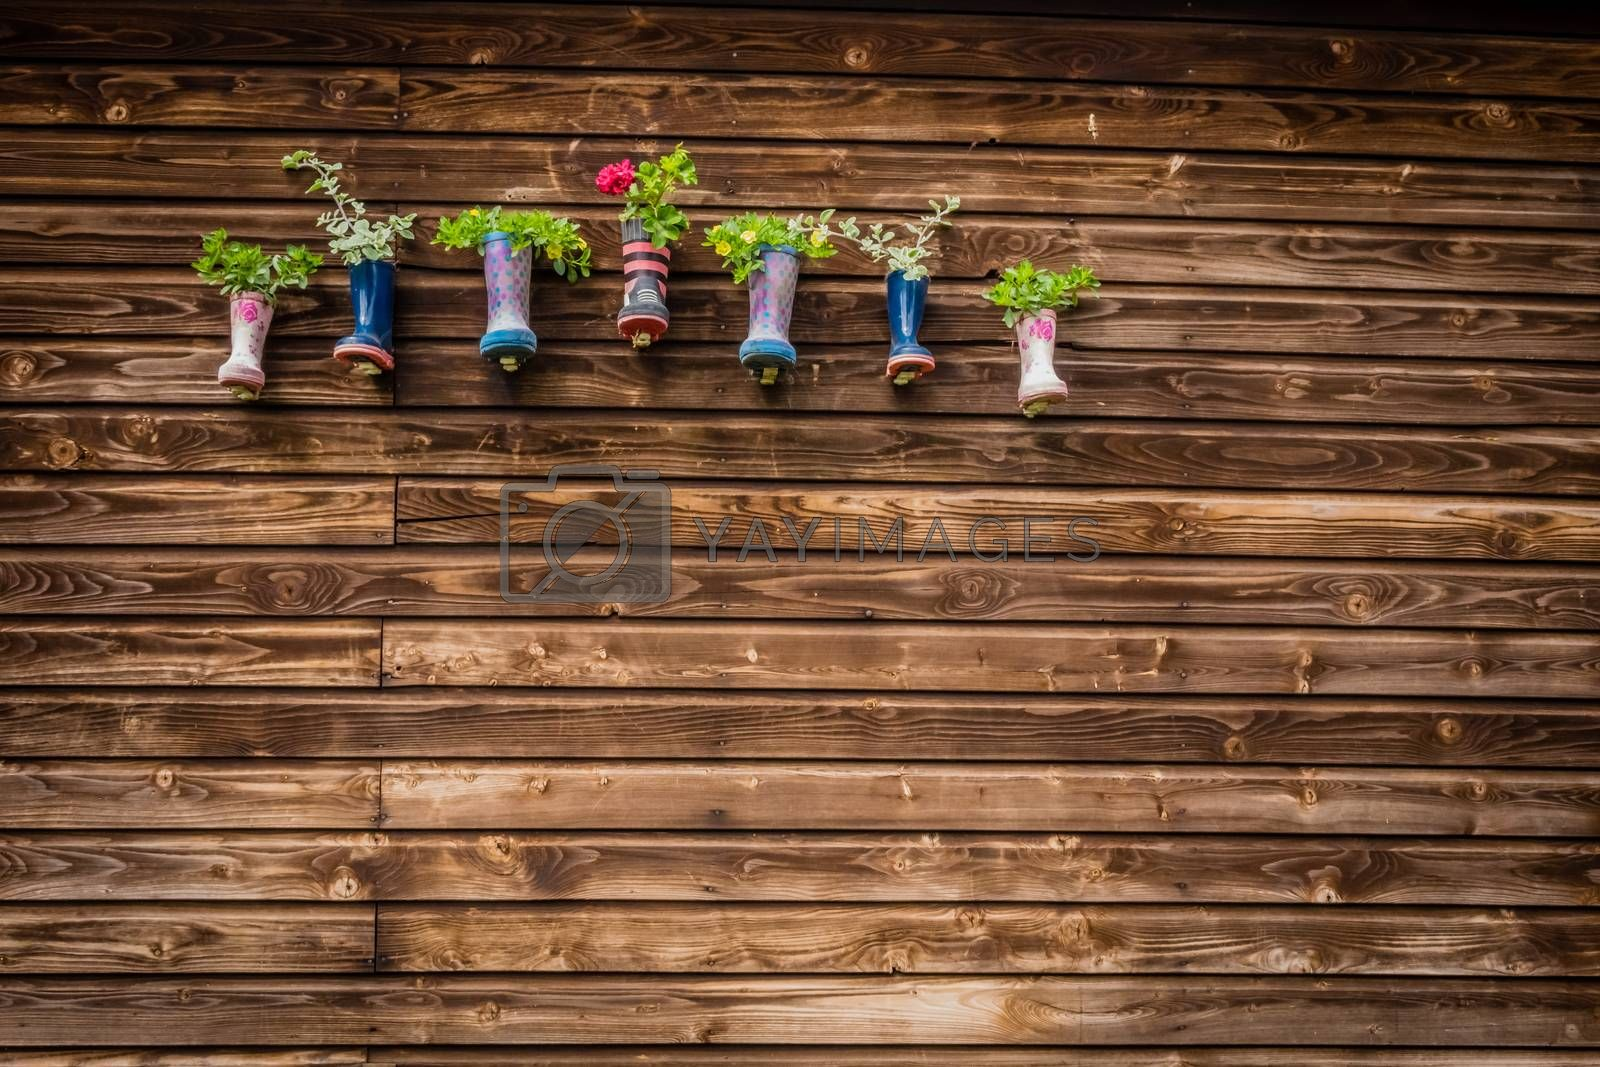 Display of flowers in kids wellies hanged on a barn wall on a farm